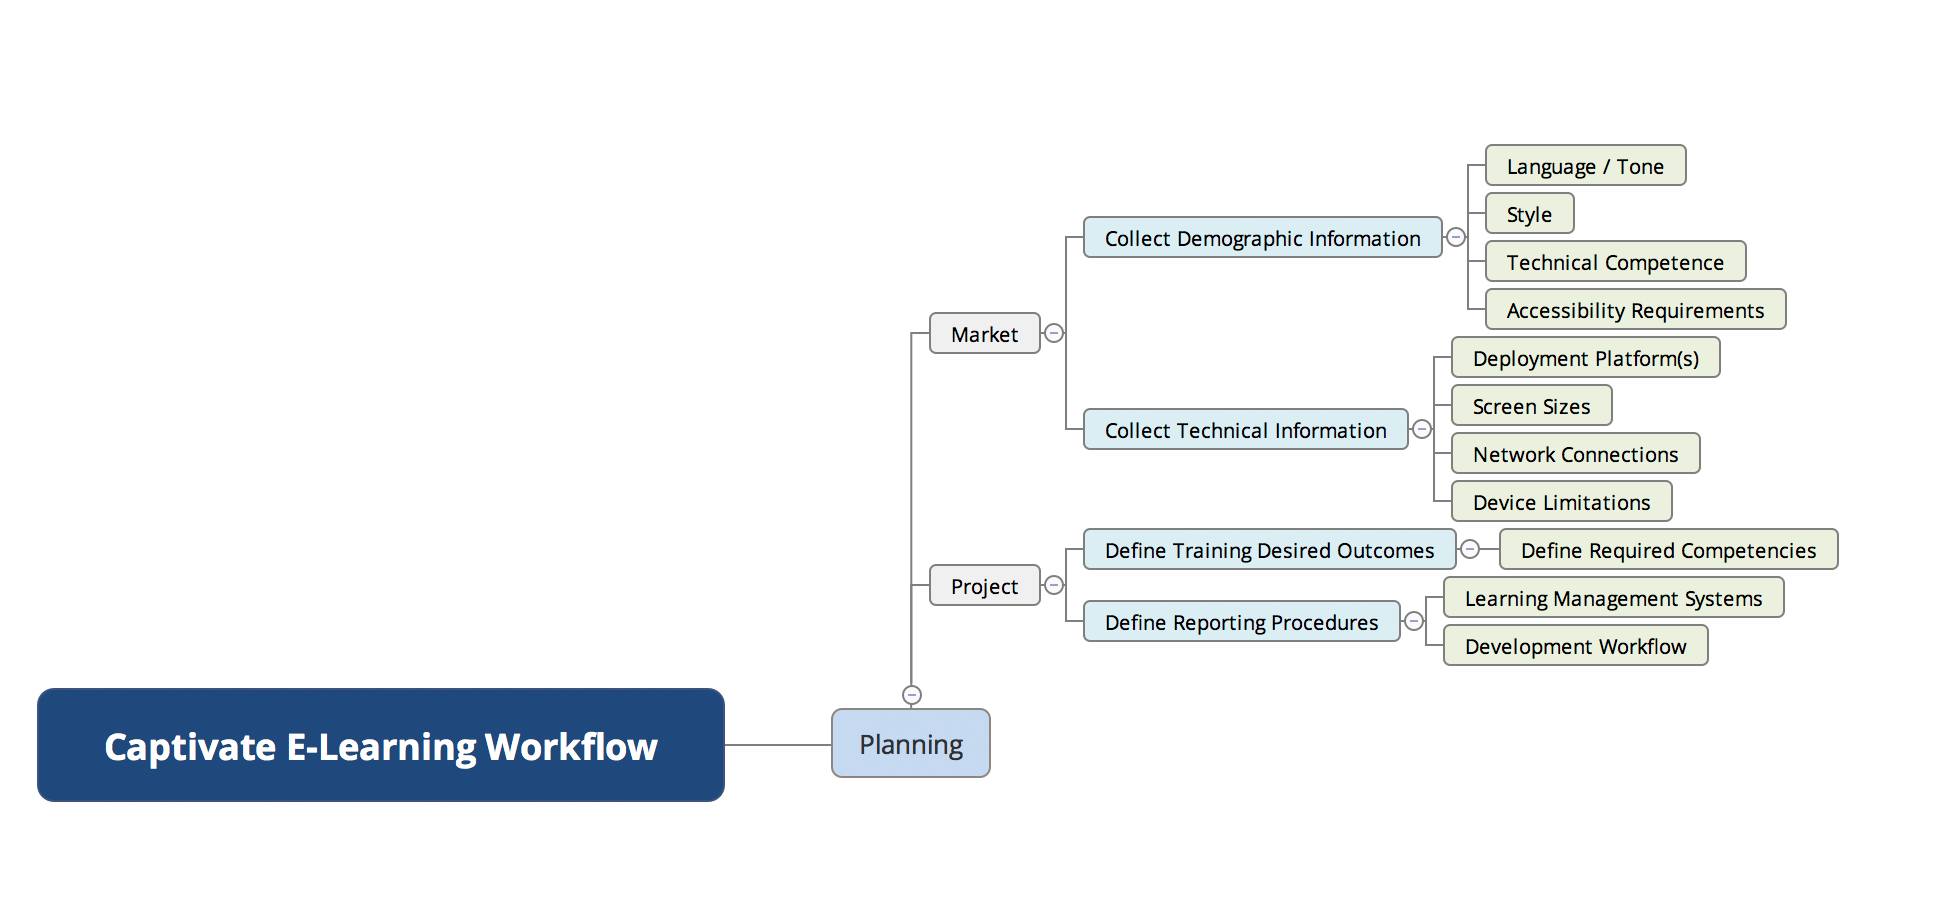 Captivate E-Learning Workflow